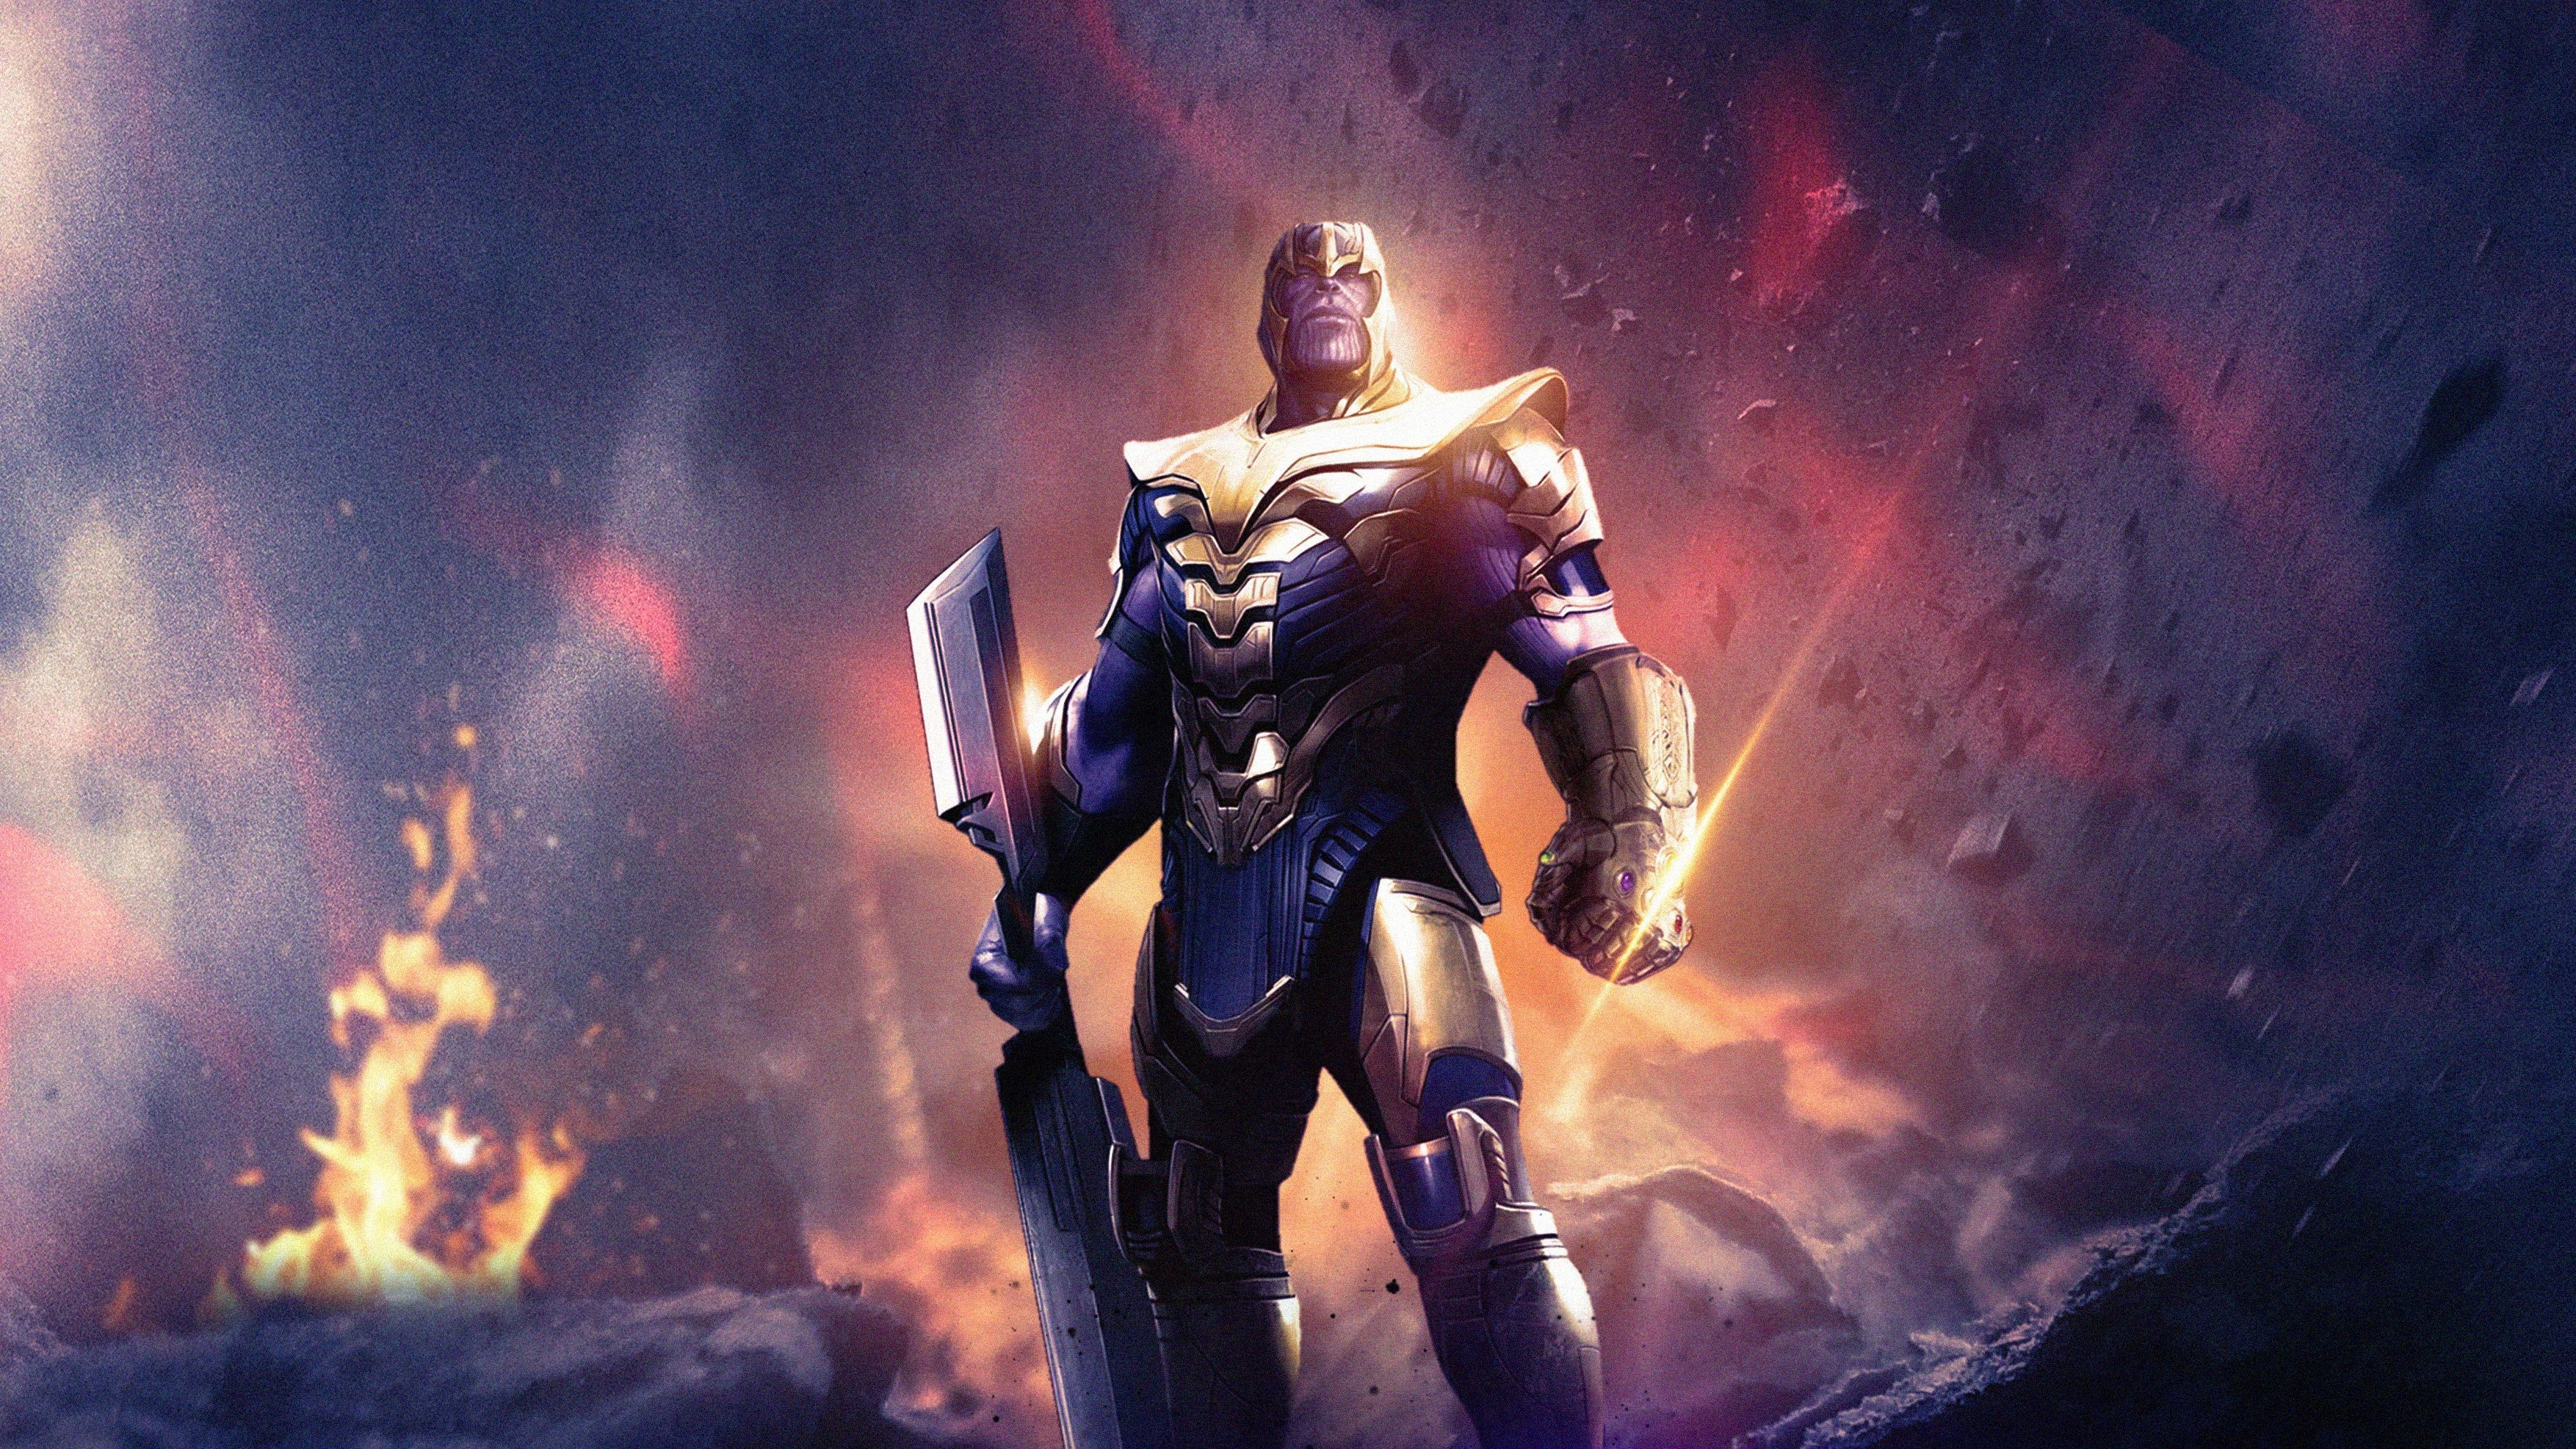 Thanos Wallpaper 4k Pc Ideas In 2020 Avengers Movies Hd Movies